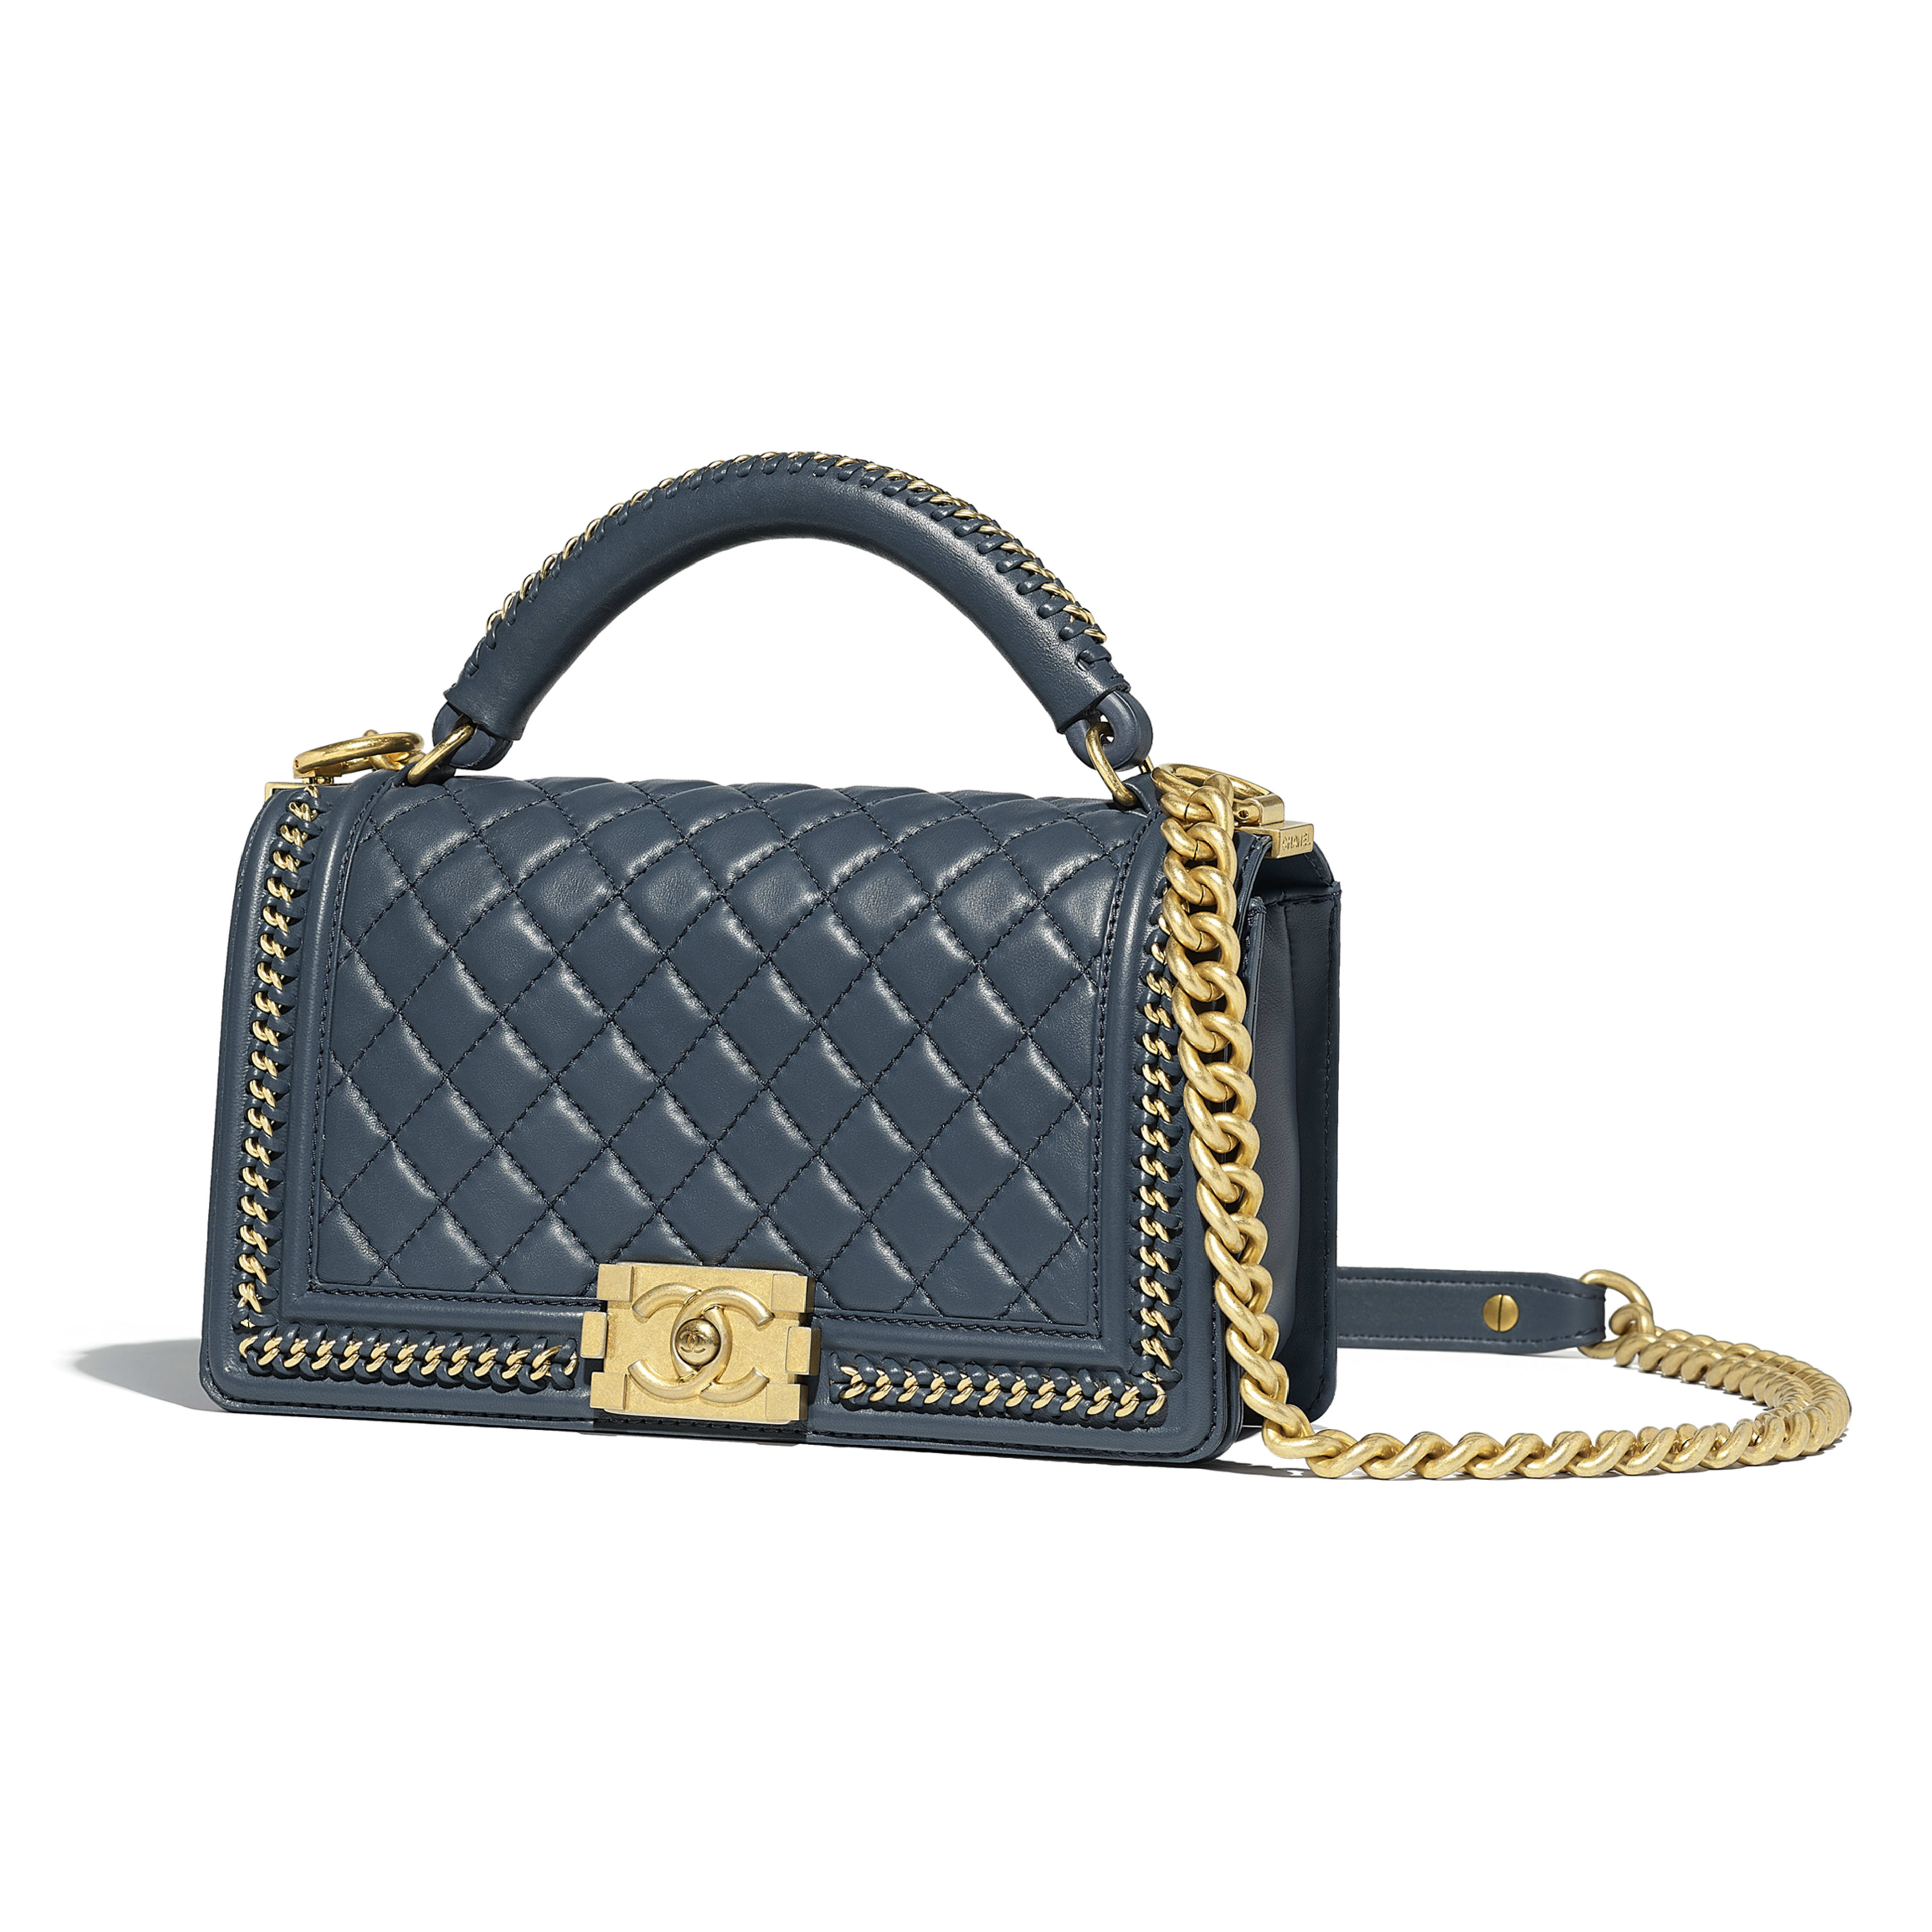 BOY CHANEL Flap Bag with Handle Calfskin & Gold-Tone Metal Blue -                                  view 1 - see full sized version